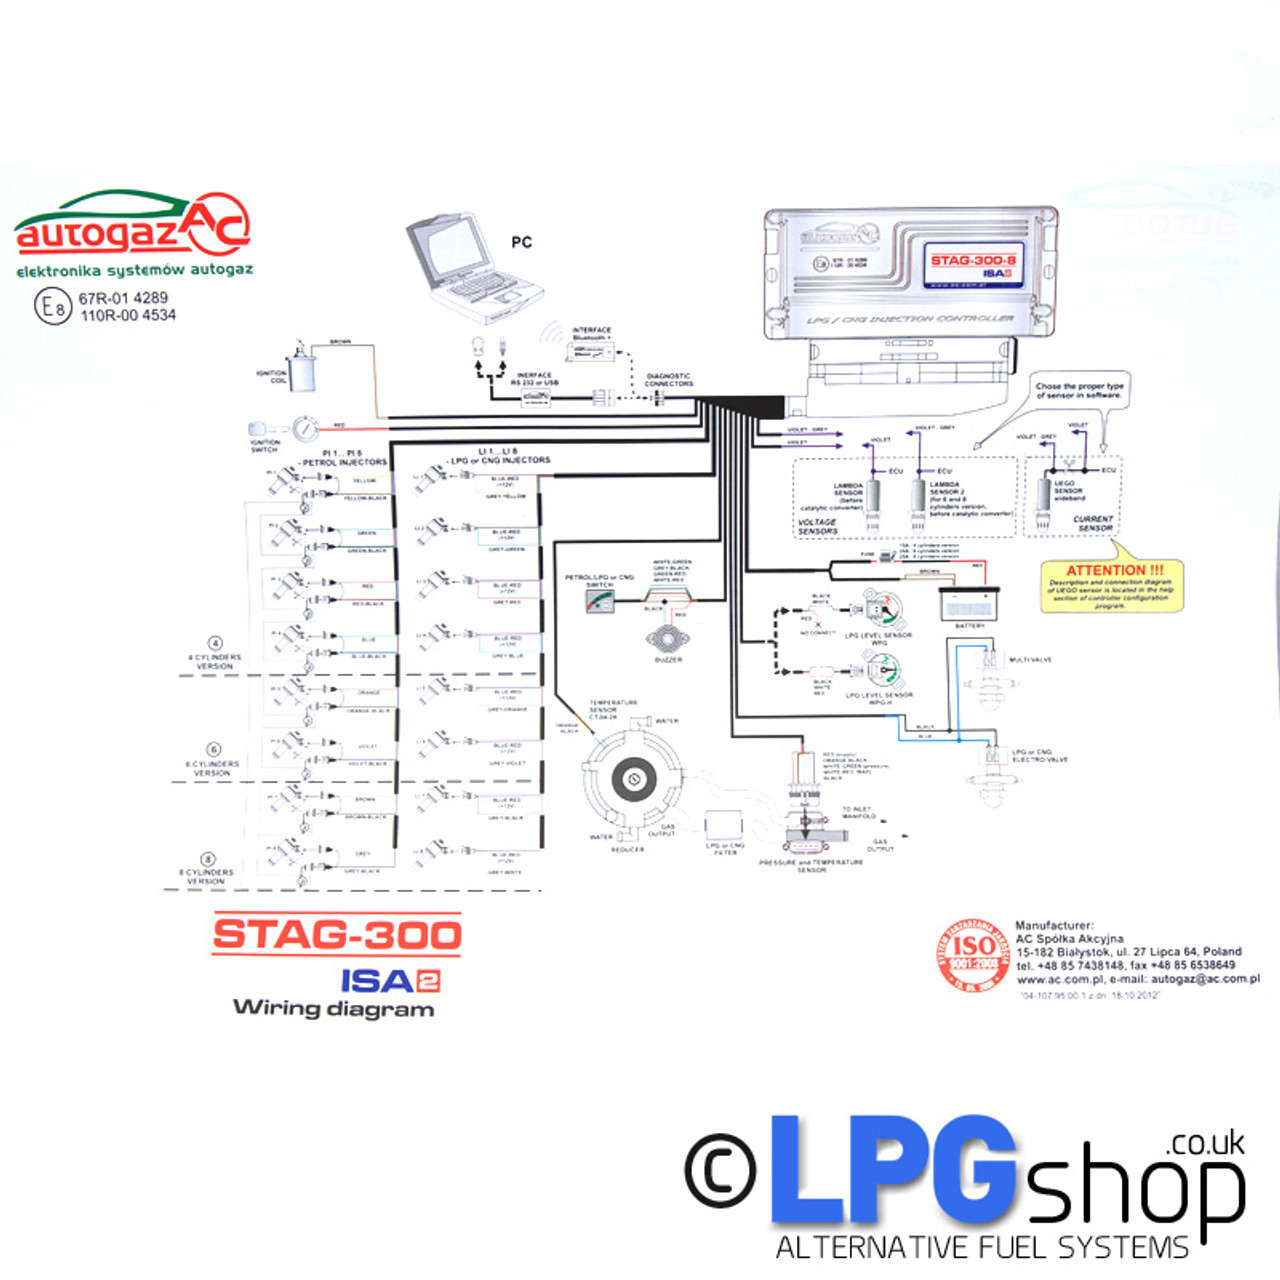 wiring � ac stag-300-8 isa2 8 cylinder ecu controller kit lpg autogas  propane connection